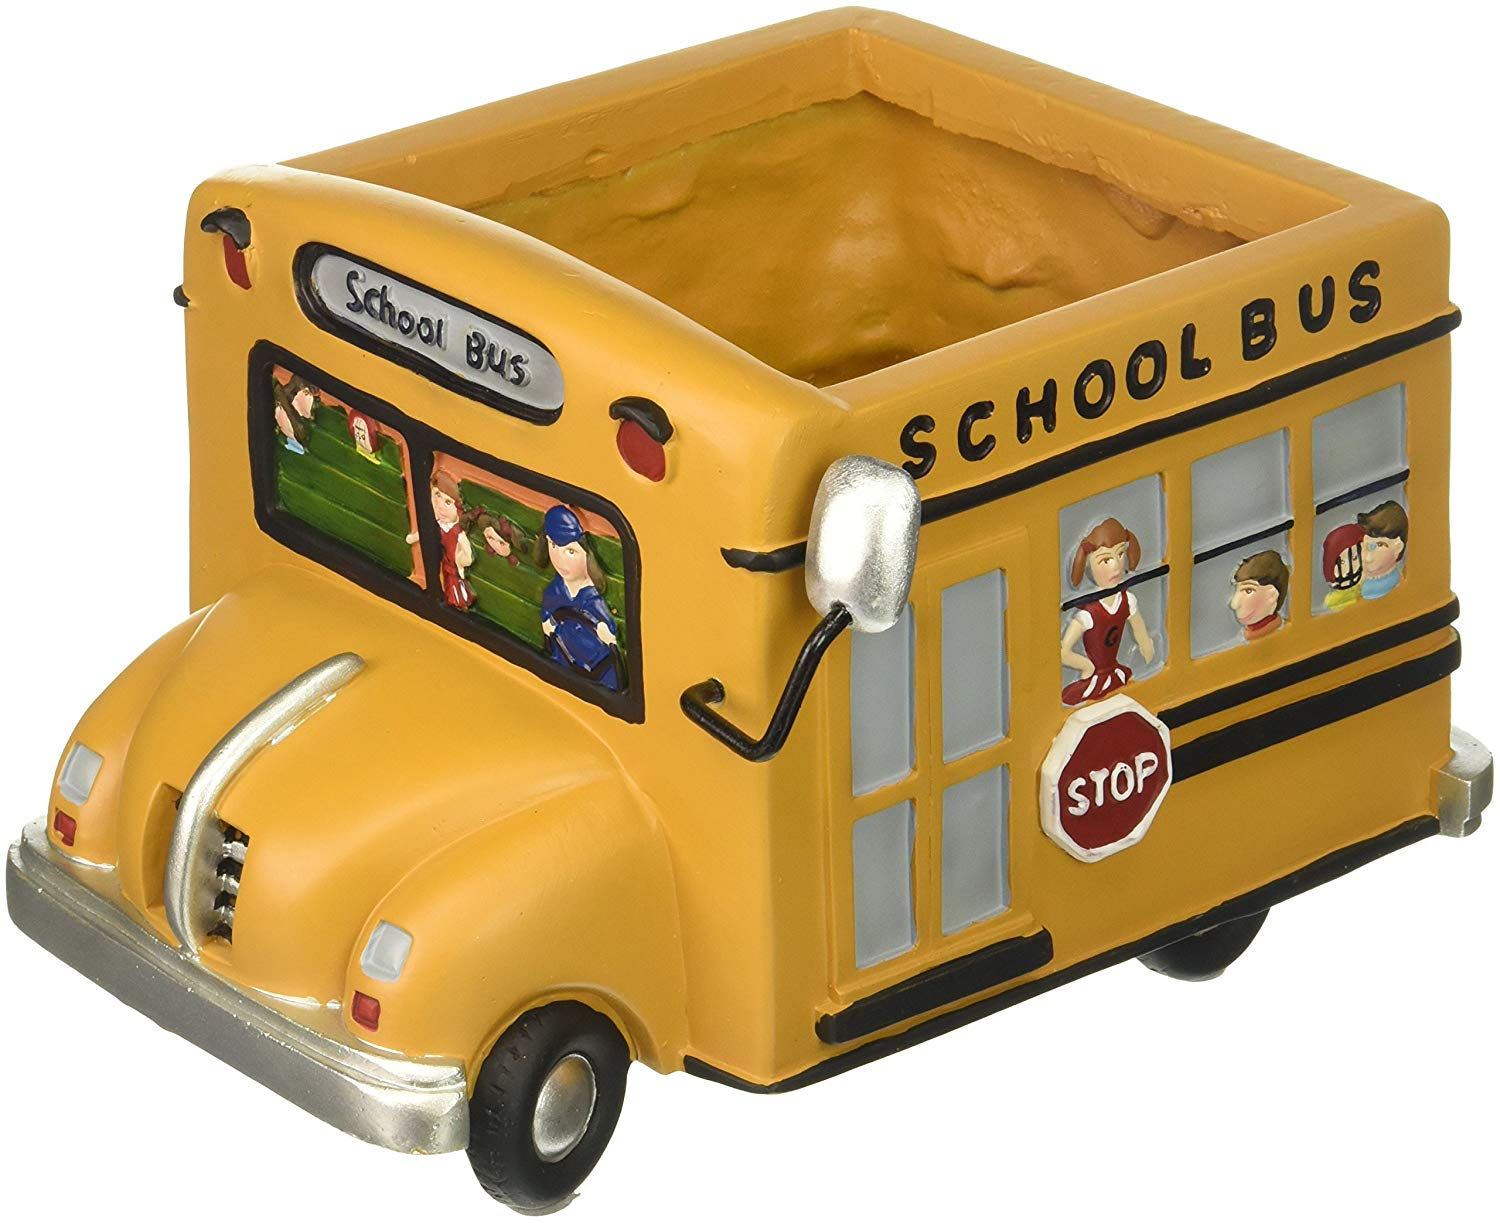 A school bus shaped planter - Bus Driver Gifts